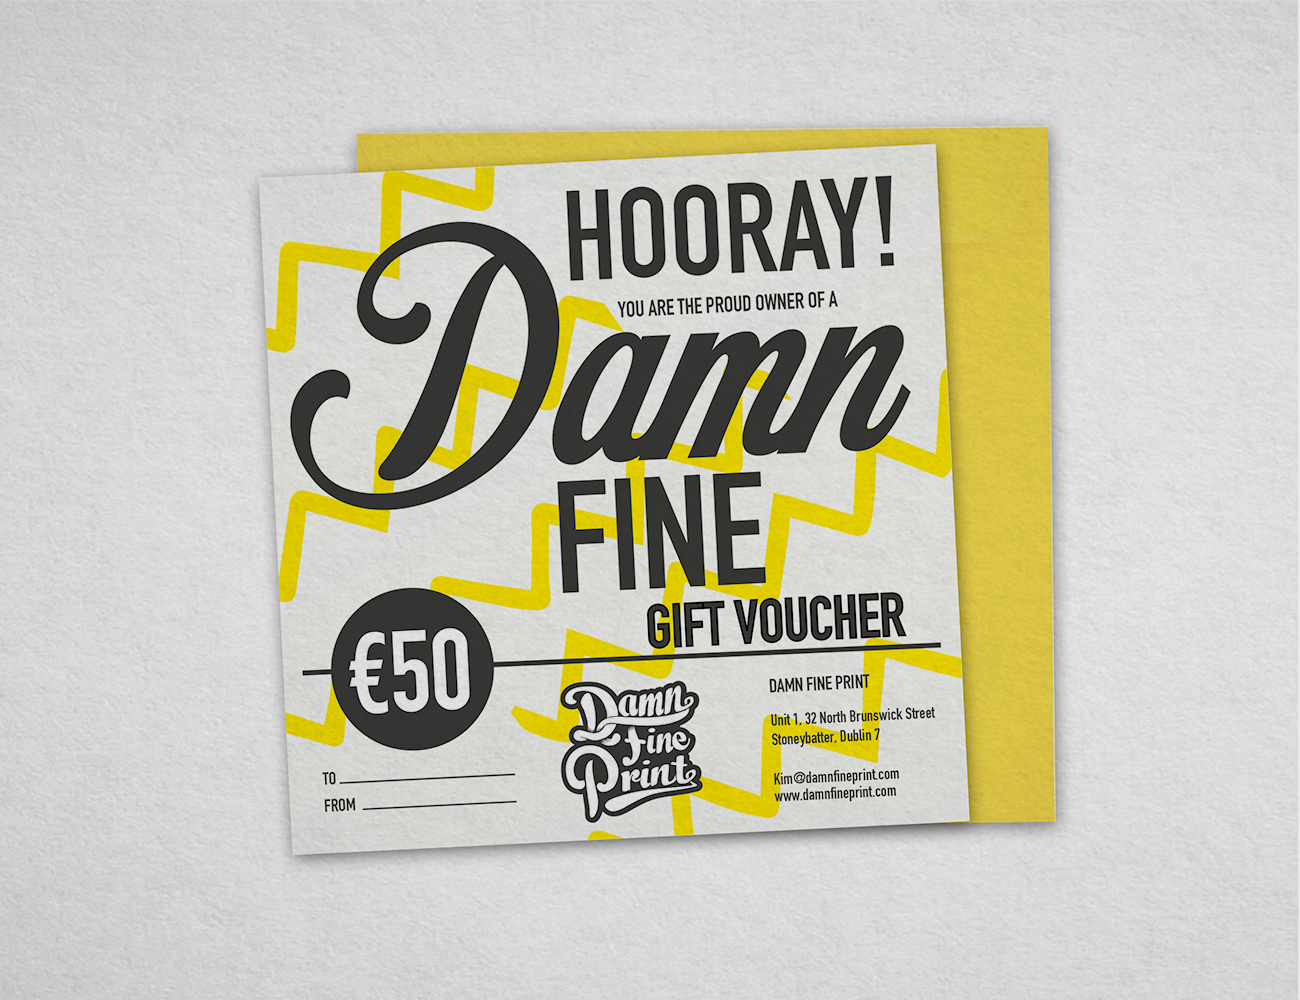 GIFTS & VOUCHERS -